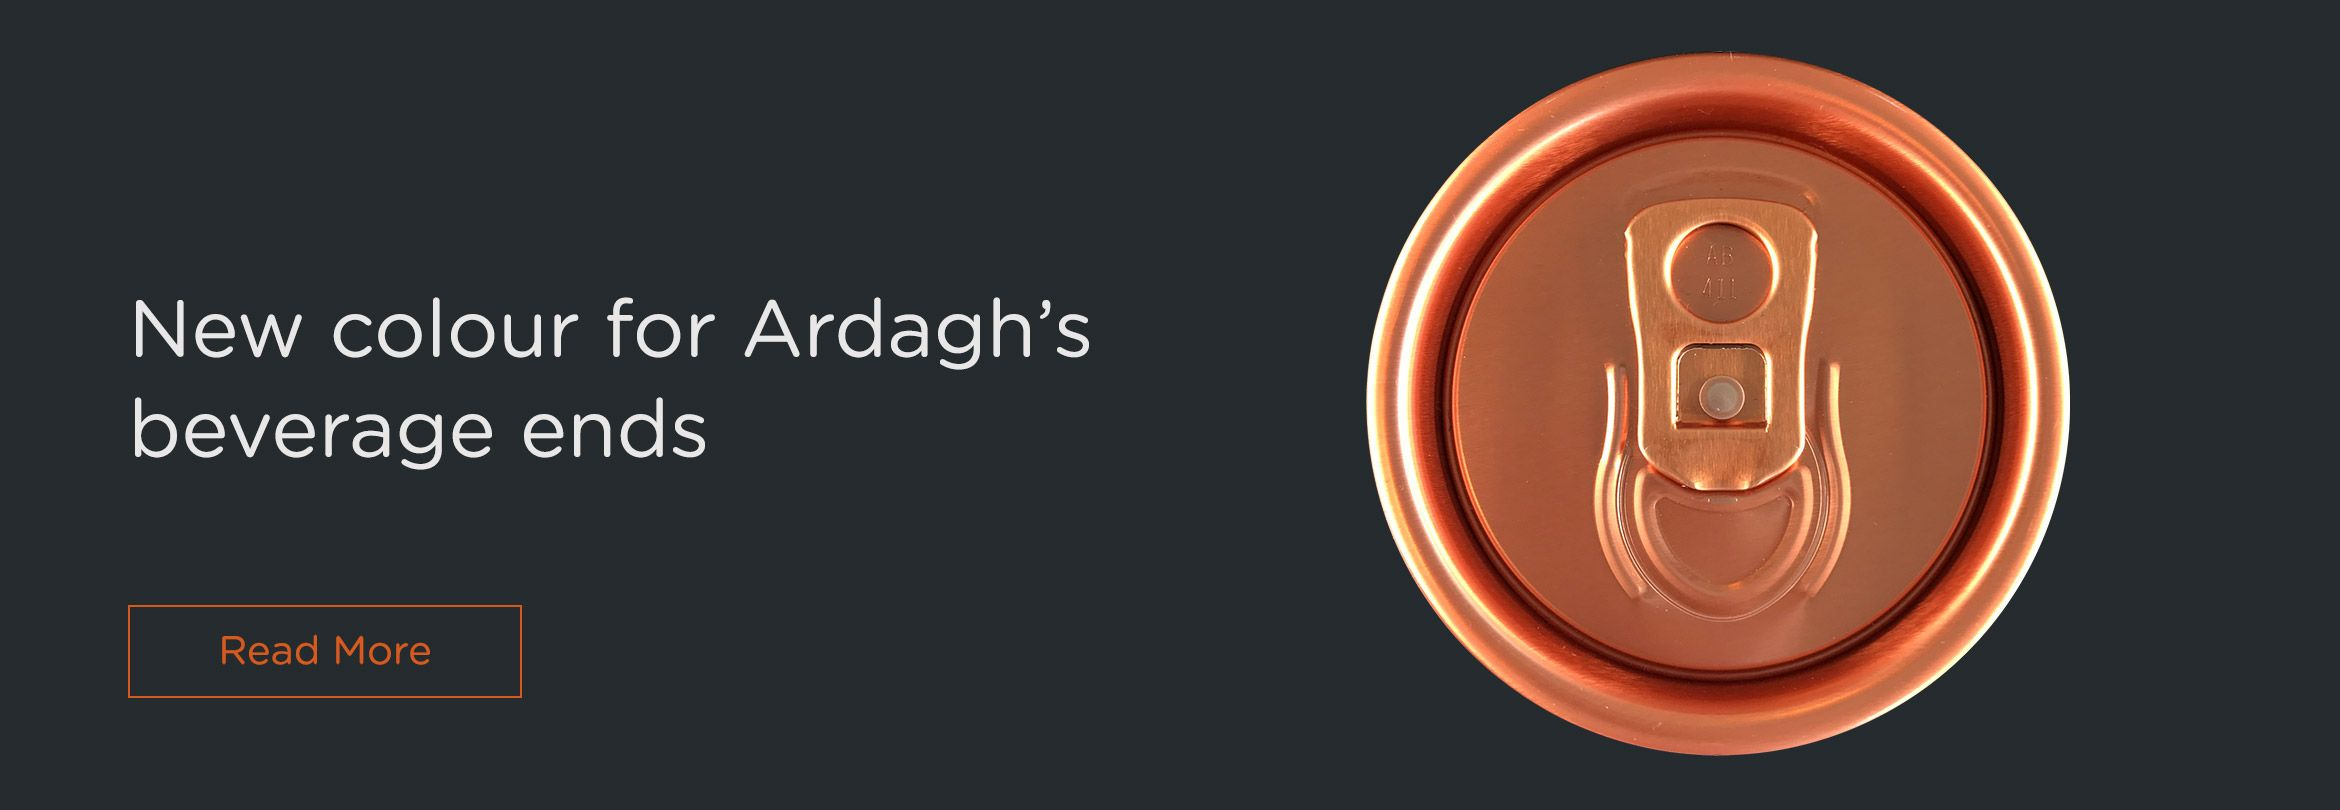 New colour for Ardagh's beverage end range